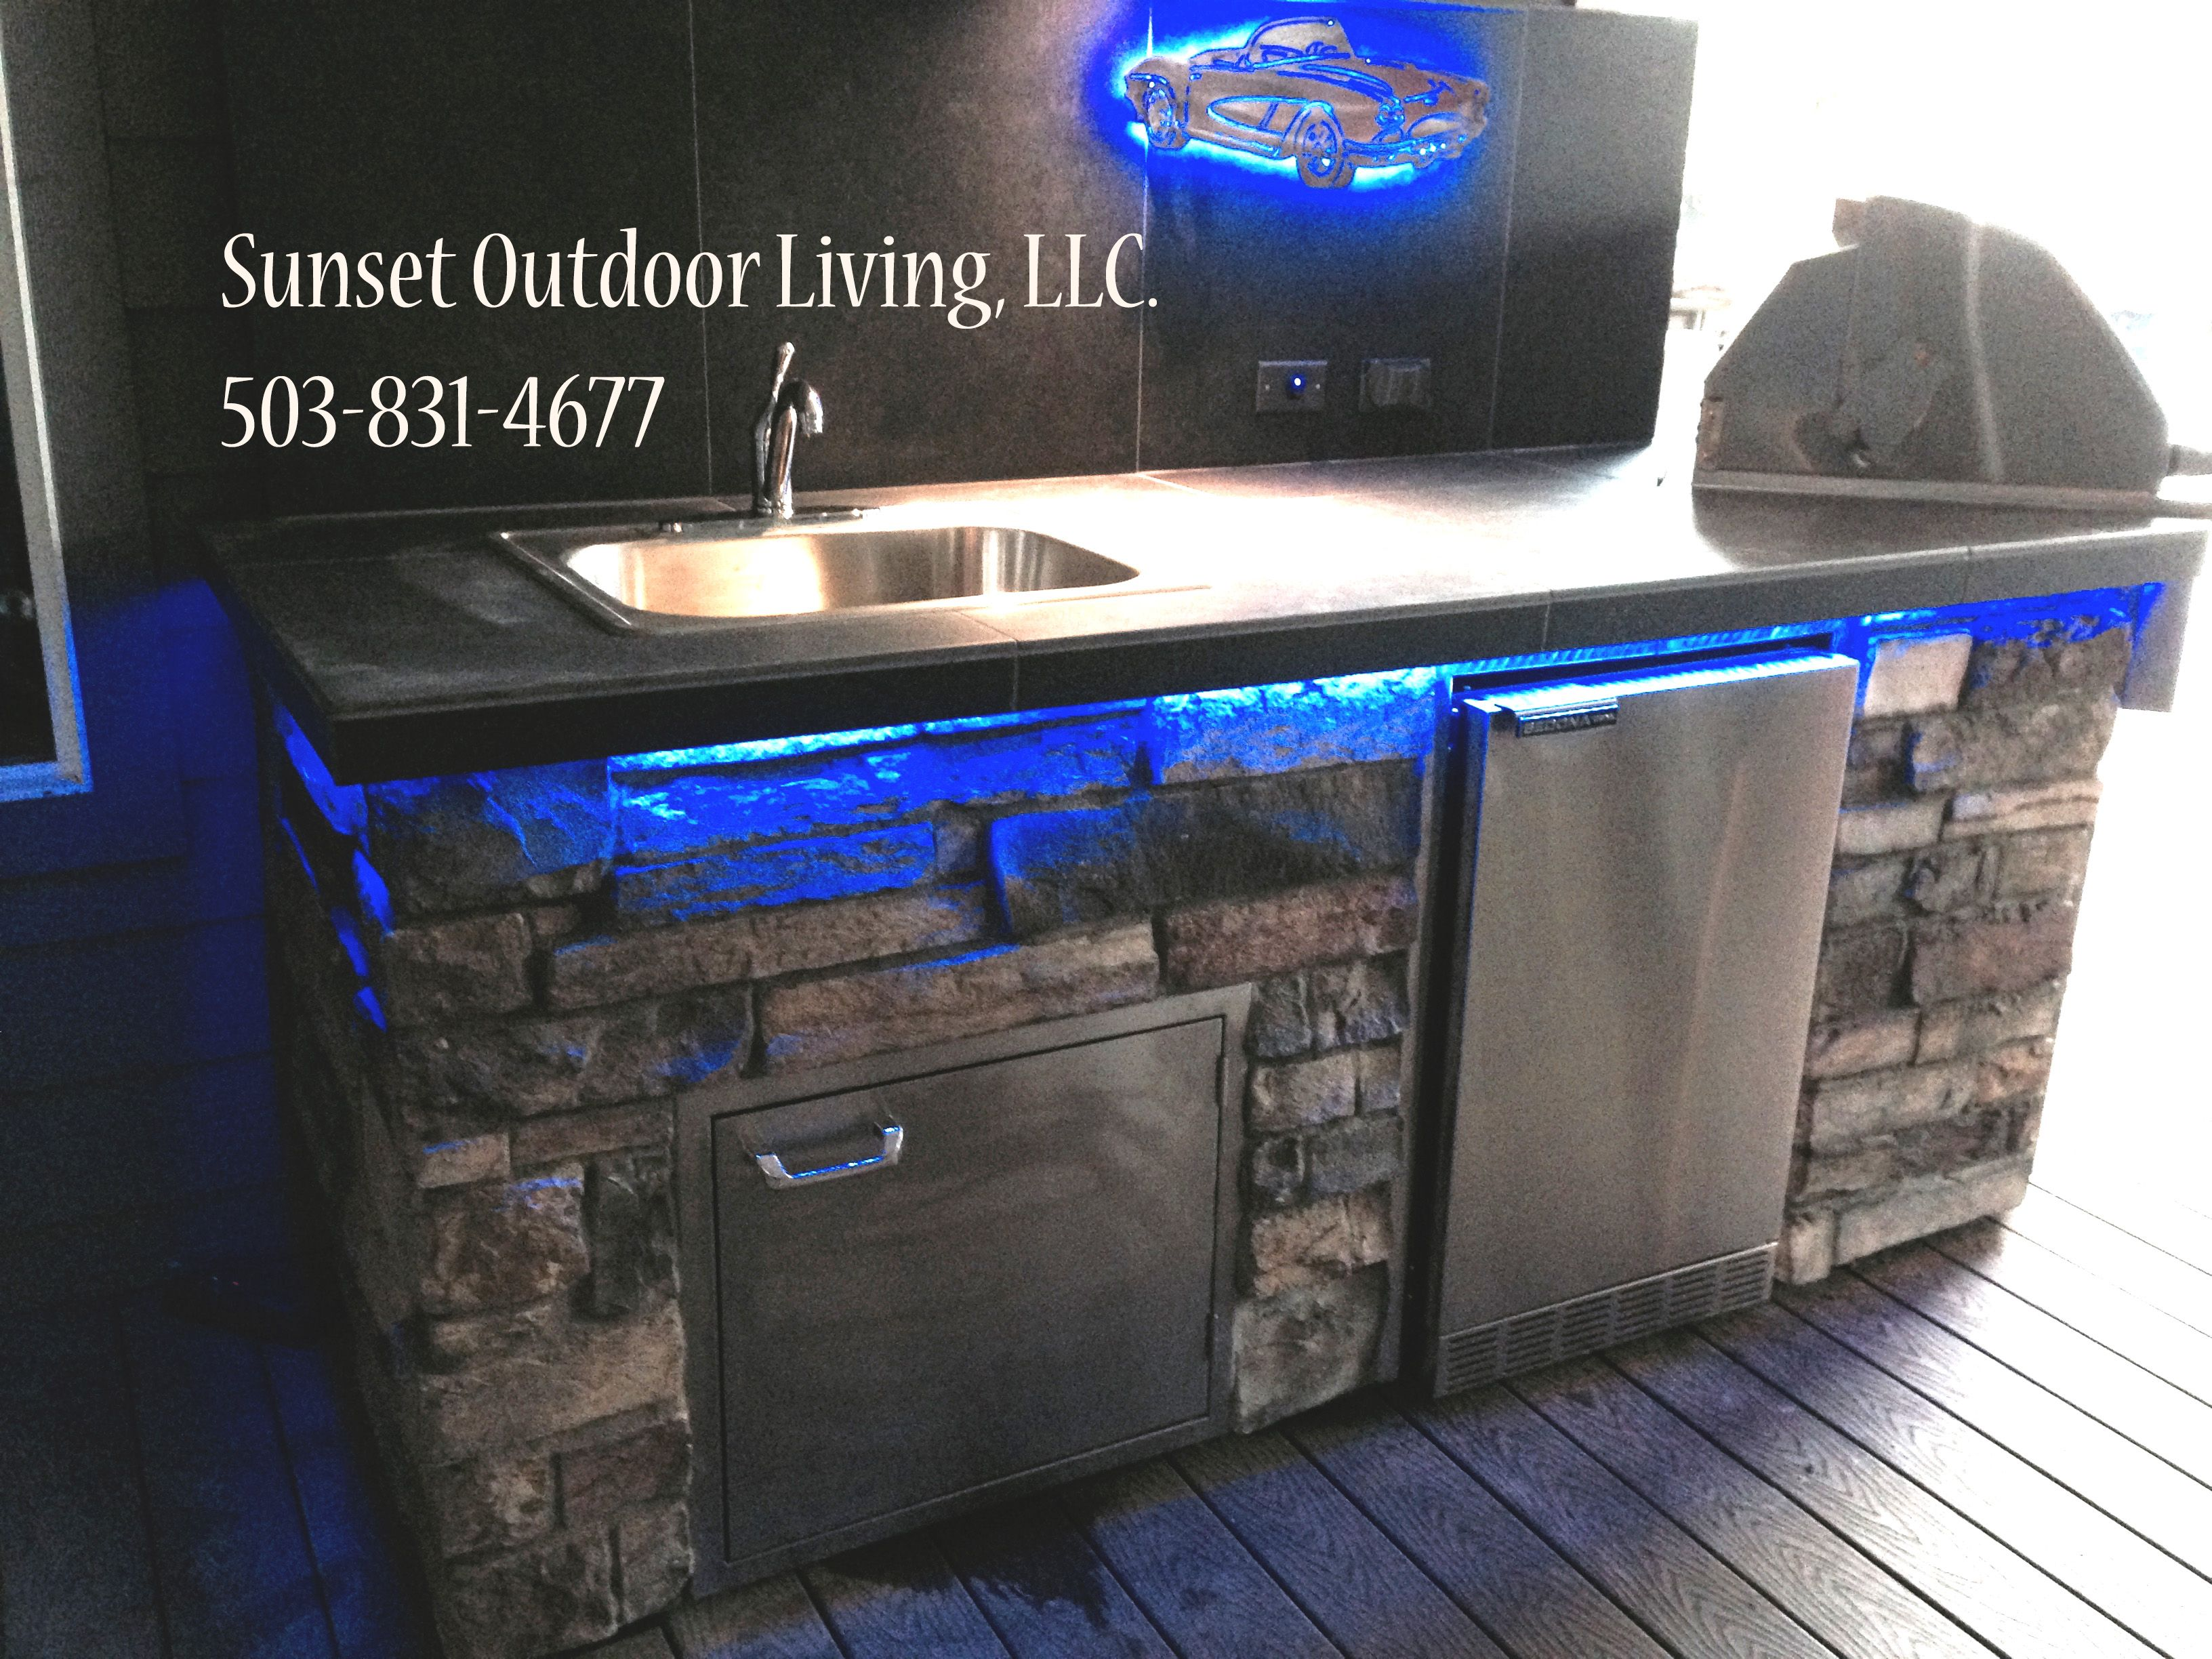 Commercial Residential Clubs Resorts Sunset Outdoor Living Llc Creating Delivering Inst Luxury Outdoor Kitchen Outdoor Living Design Outdoor Kitchen